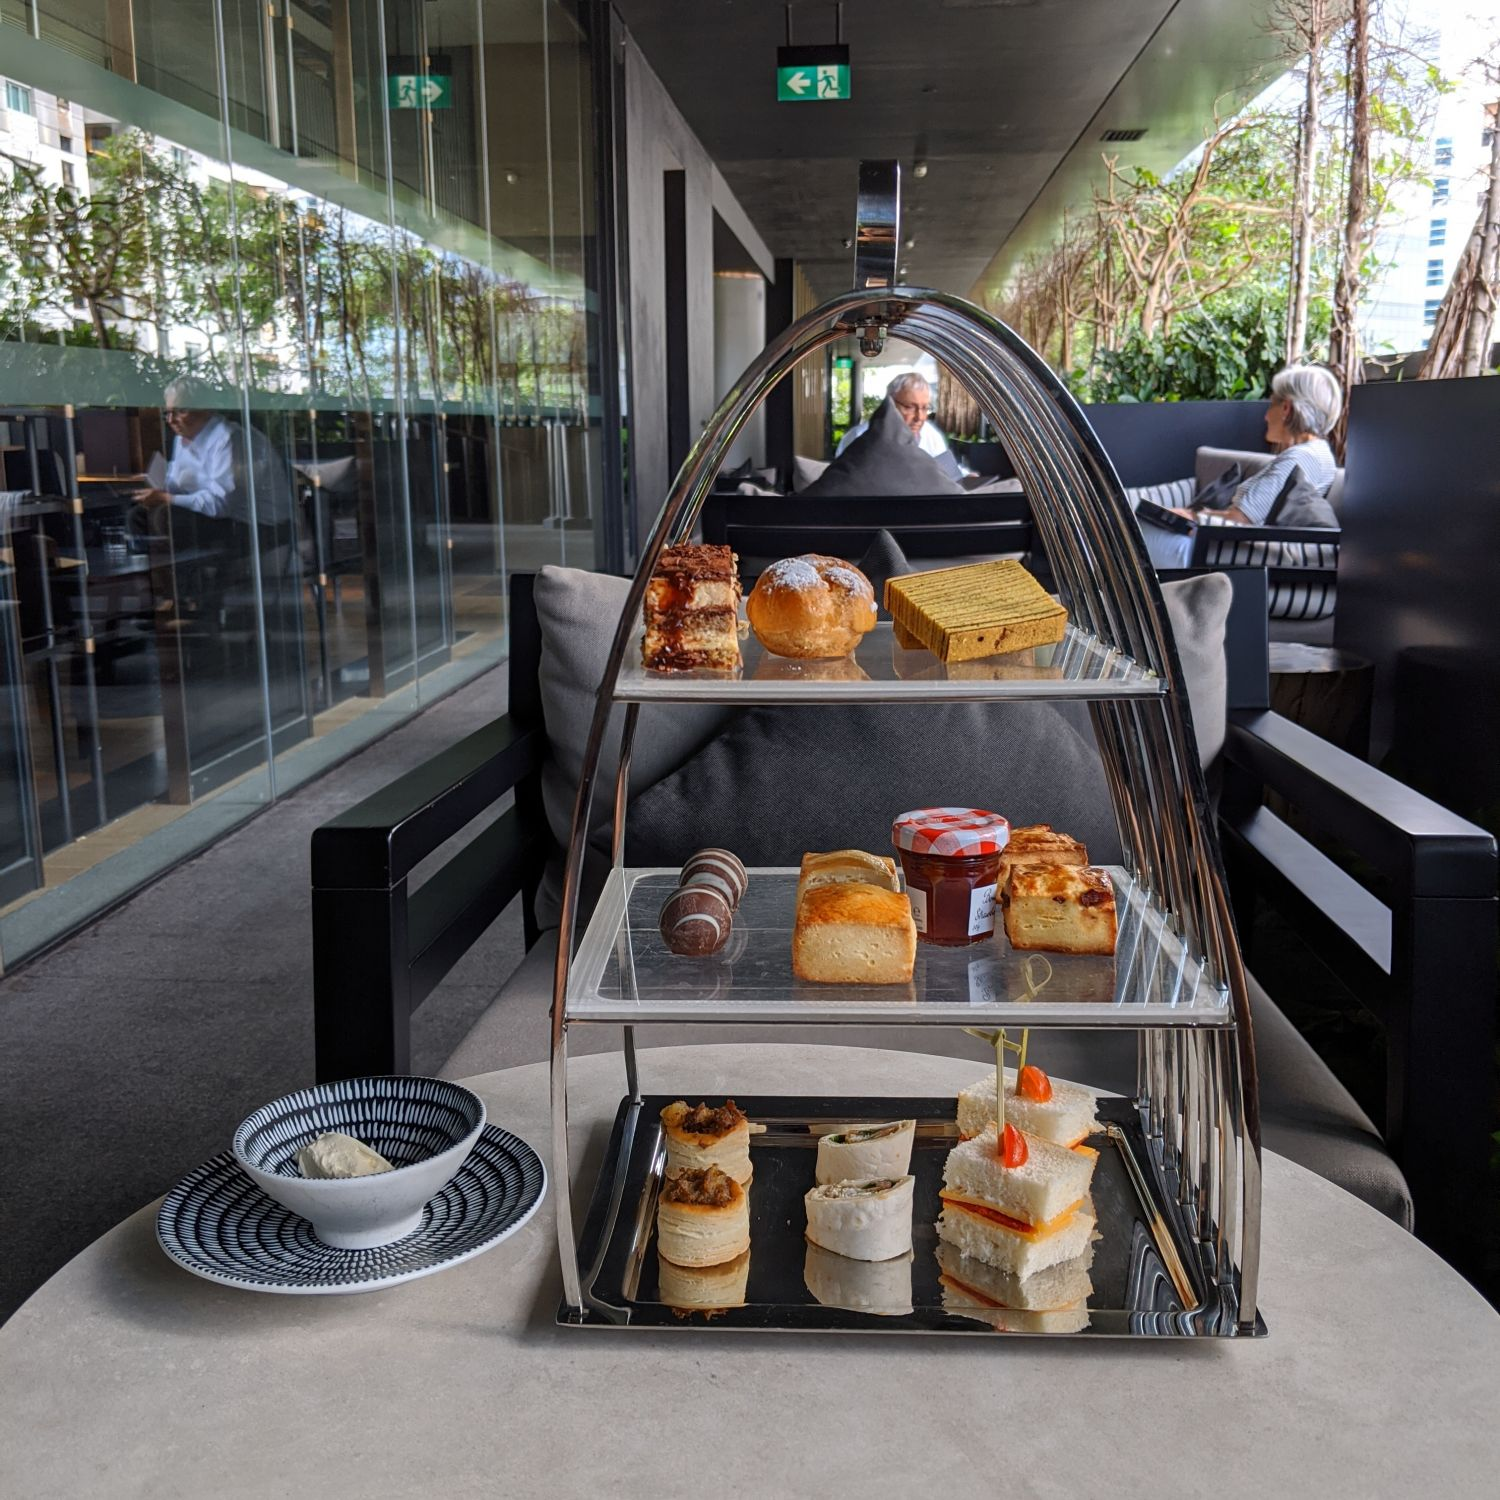 InterContinental Singapore Robertson Quay afternoon tea